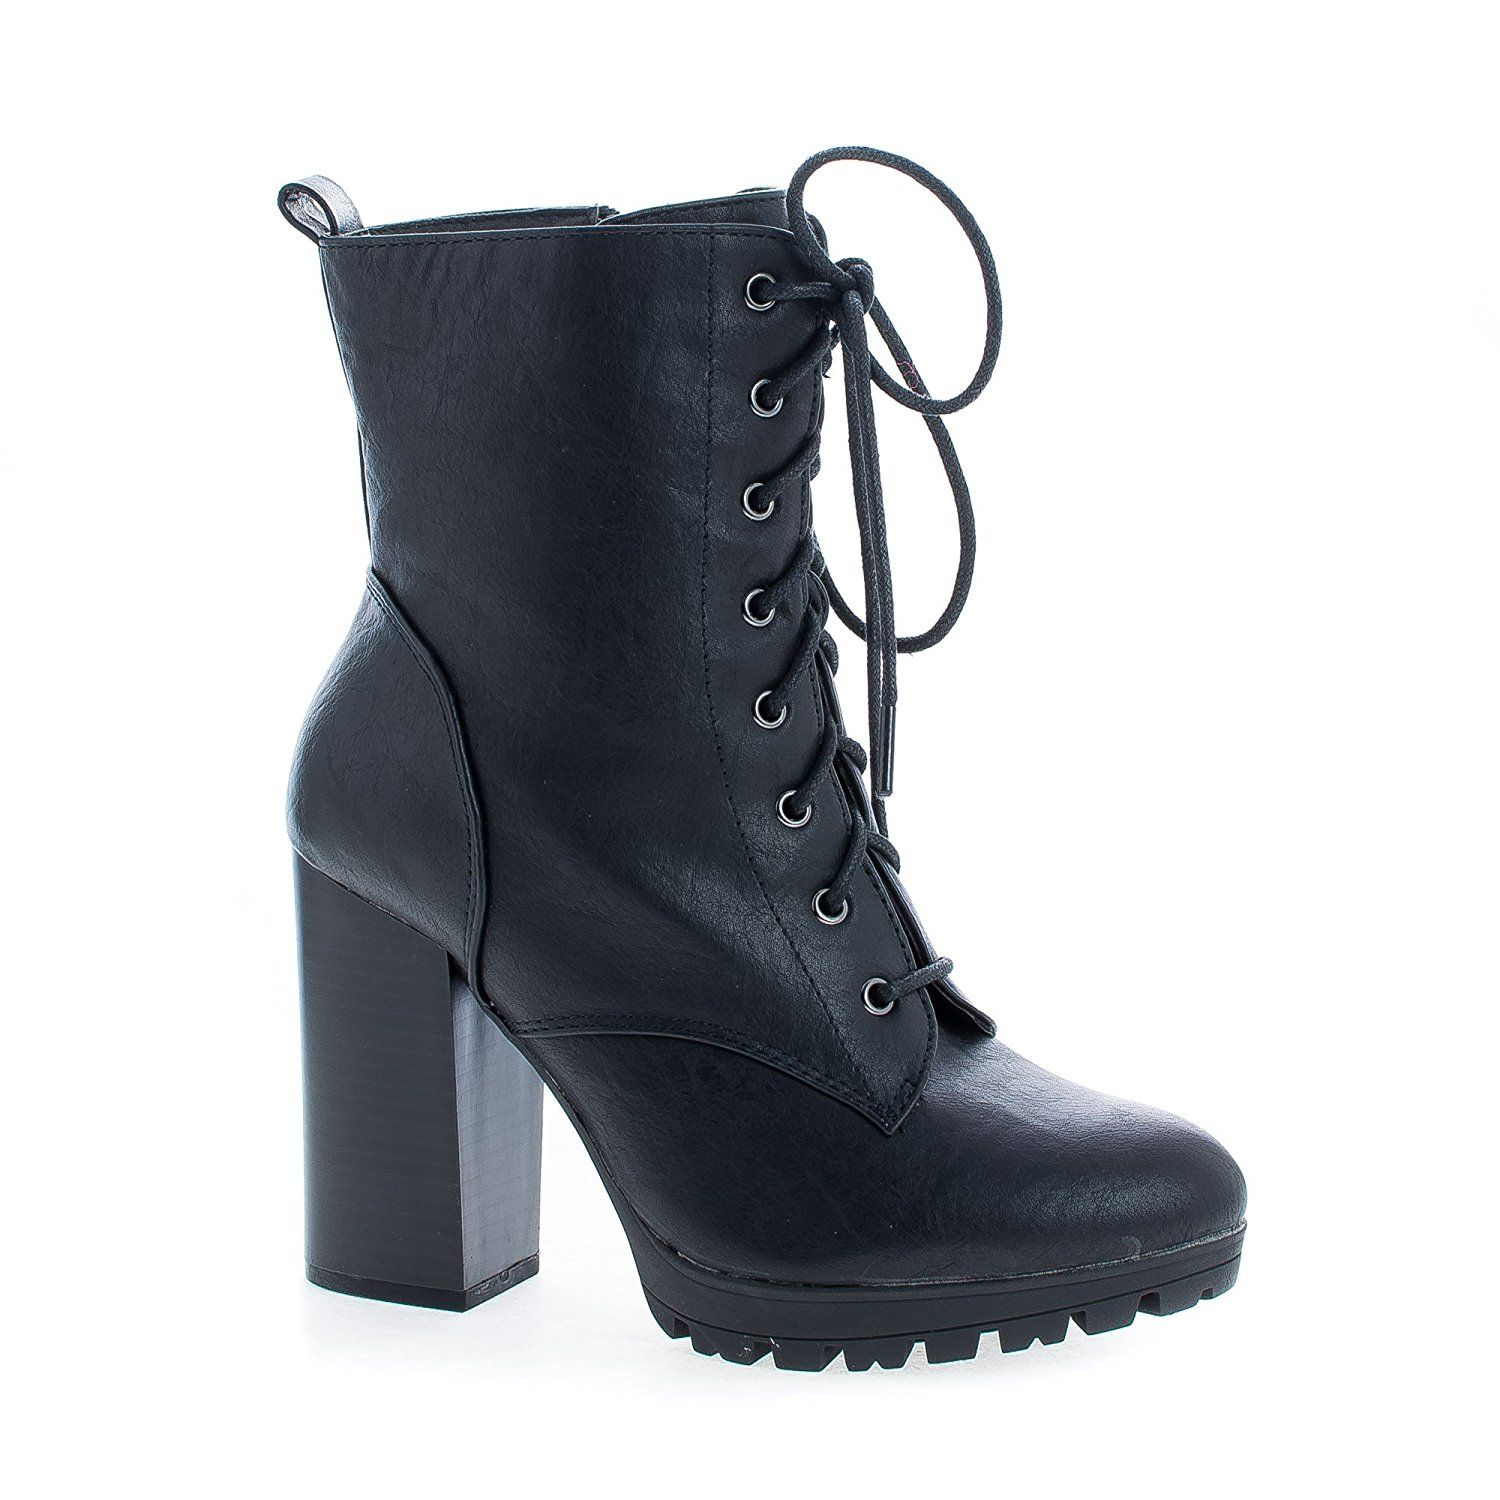 Lace Up Lug Sole Platform Block High Heel Combat Boots   For more  information 4374378336